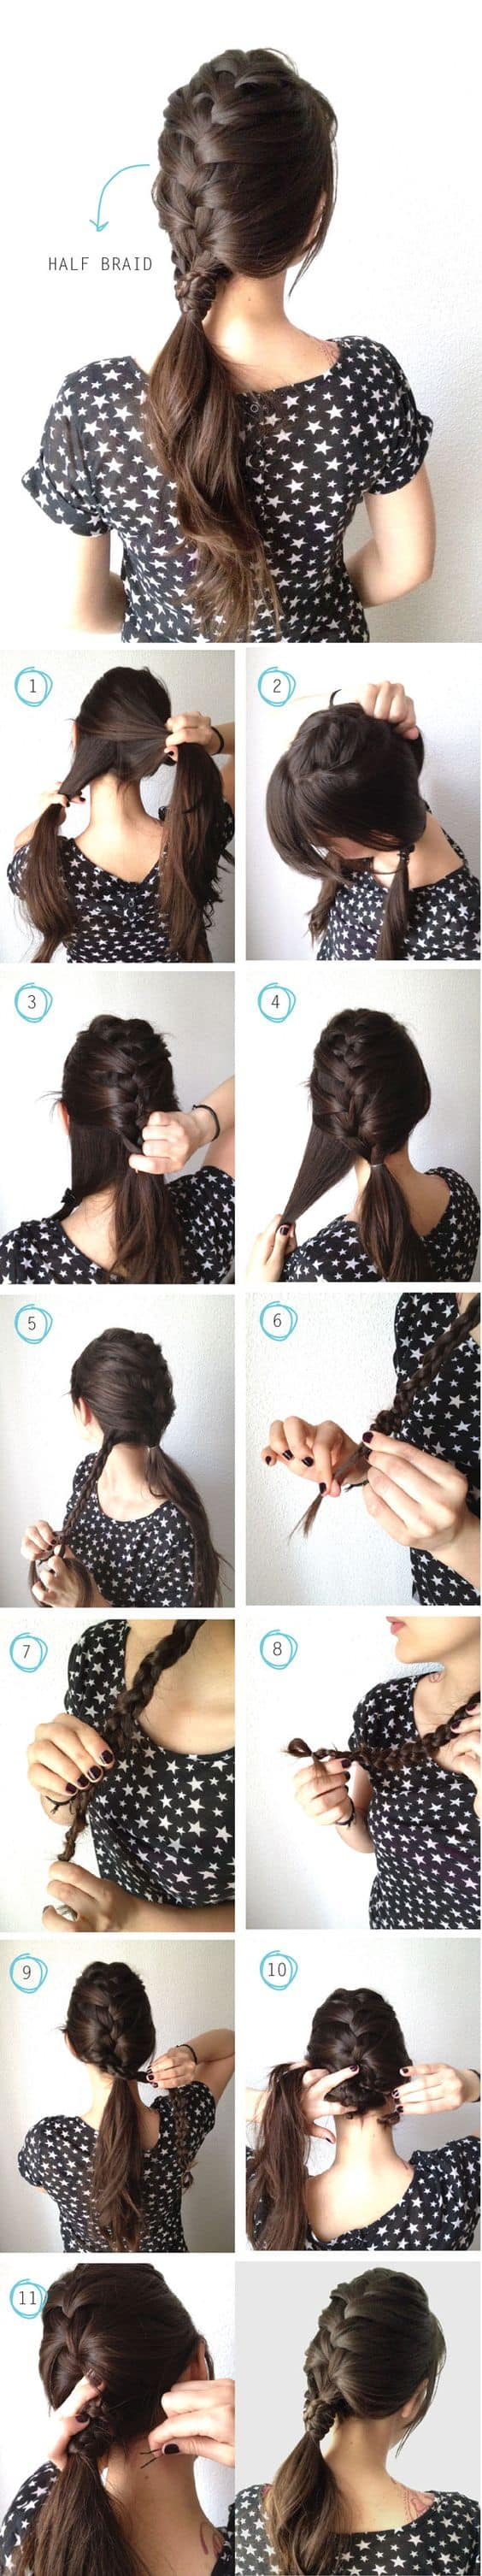 Ponytail without hair band - The Half Braid Half Ponytail Easy Hairstyle Tutorial For Sports